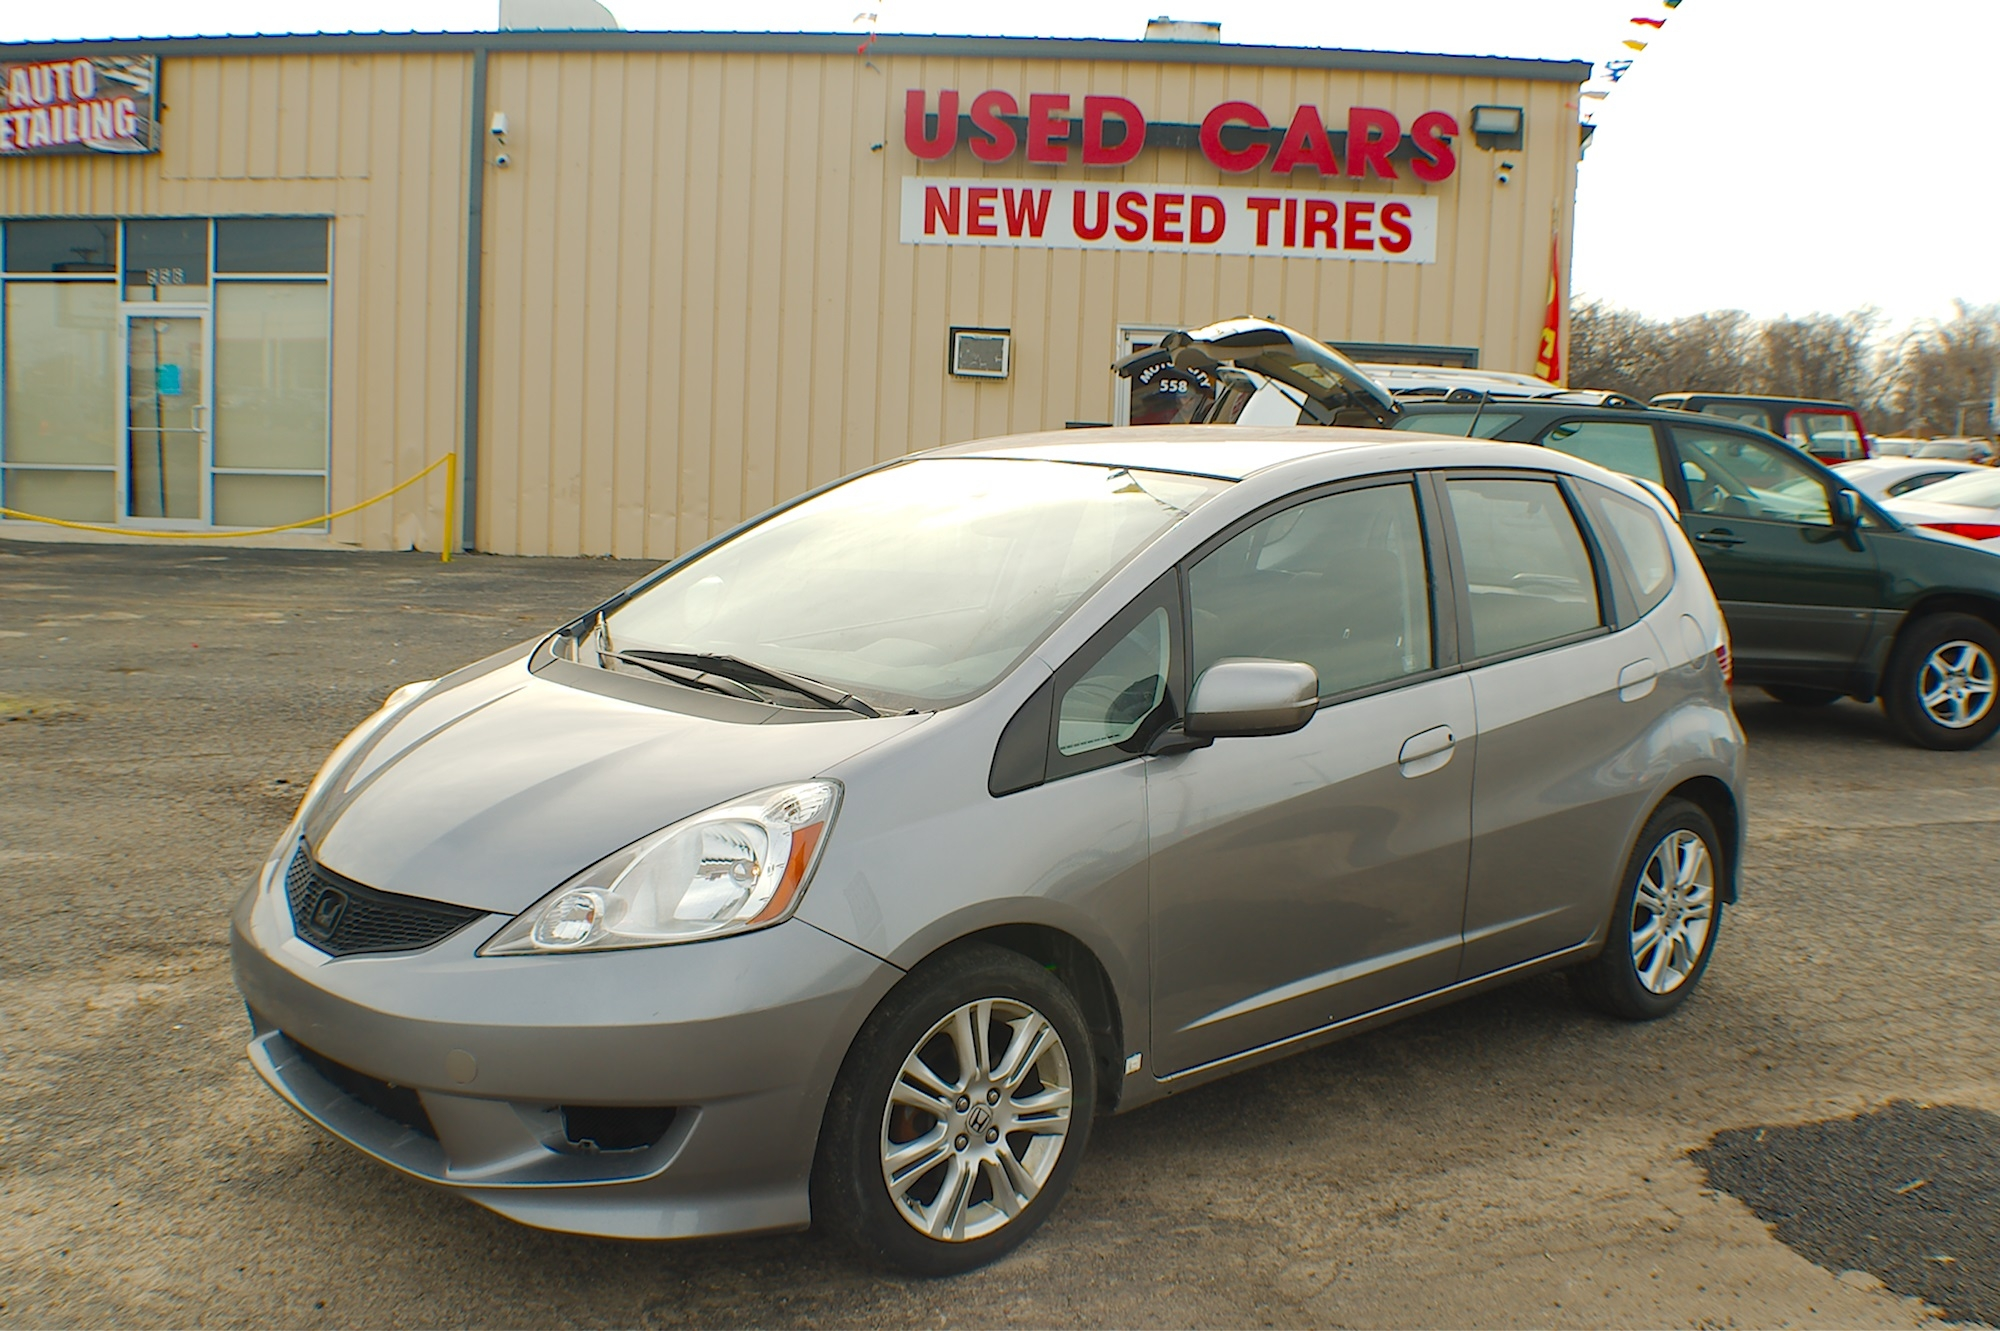 2009 Honda Fit Gray Hatchback Used Car Sale Gurnee Kenosha Mchenry Chicago Illinois